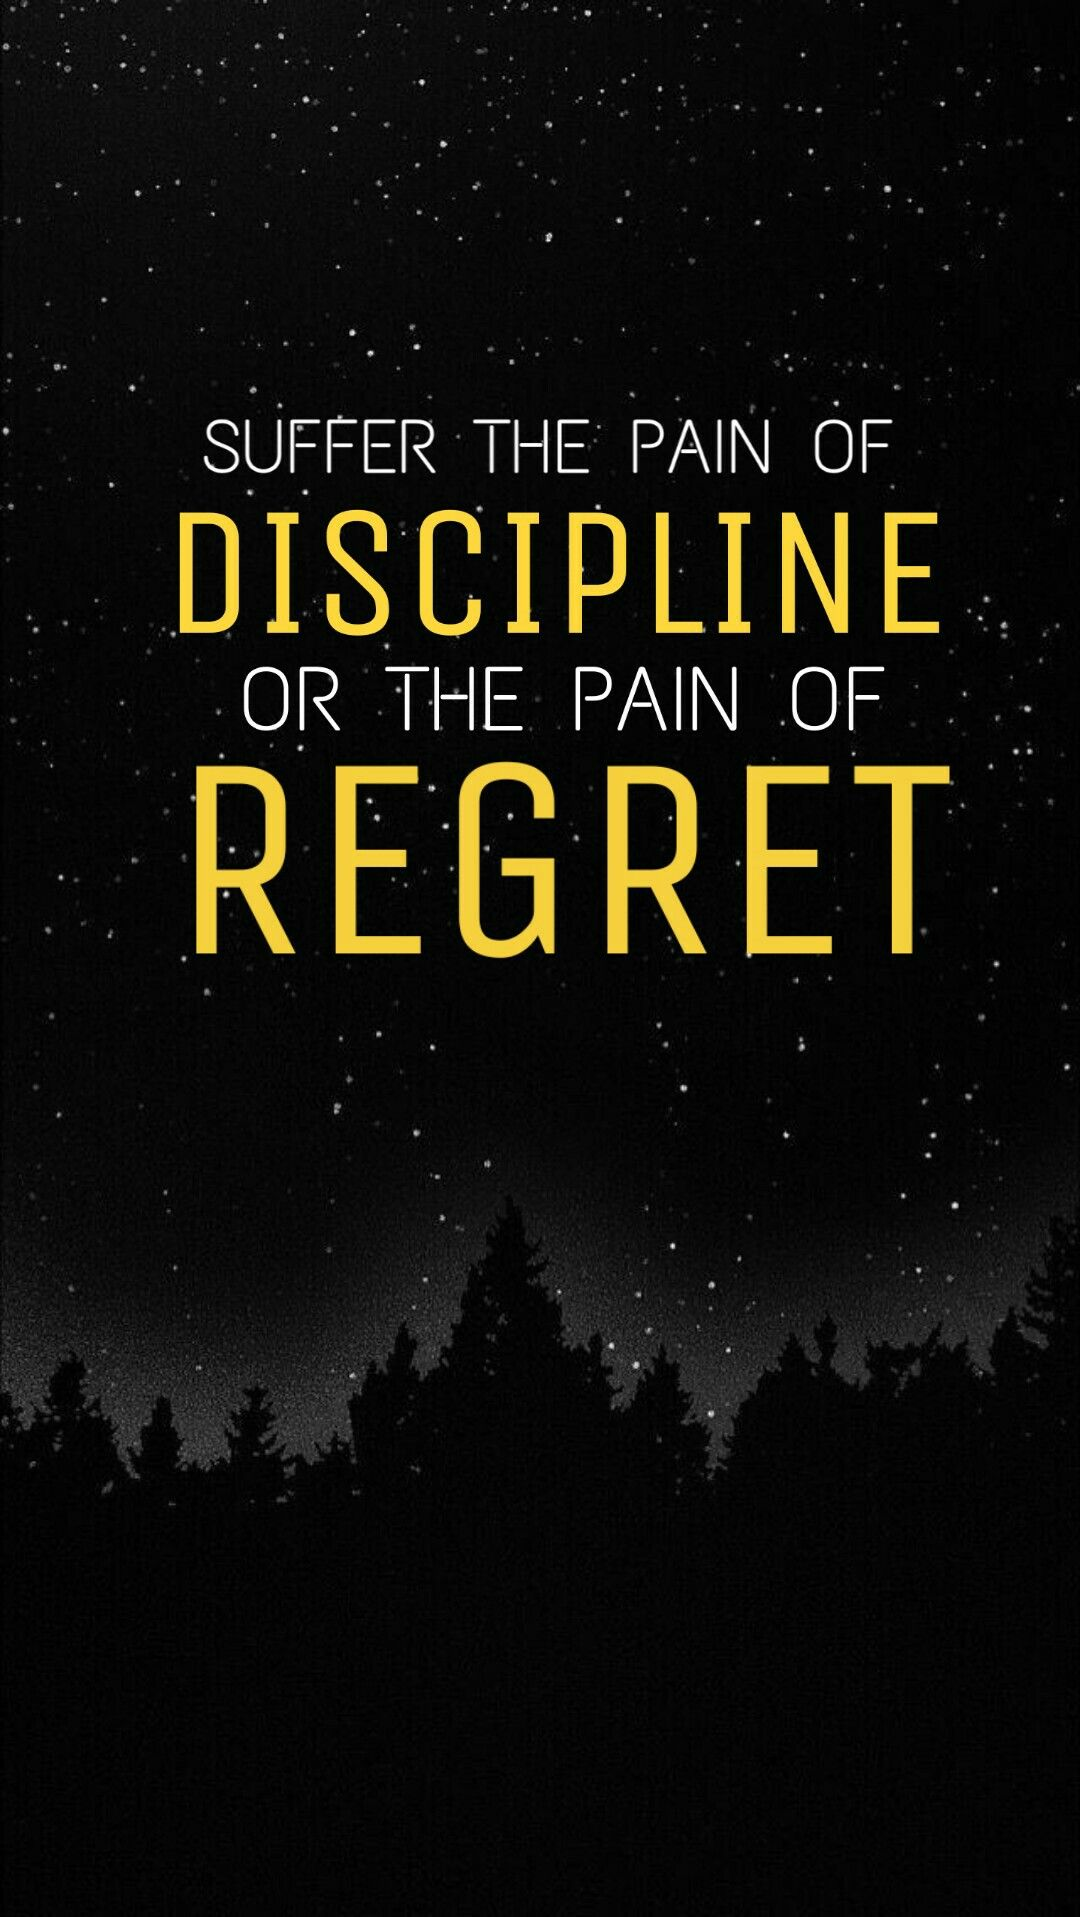 """ Suffer the pain of Discipline or the pain of Regret "" an"